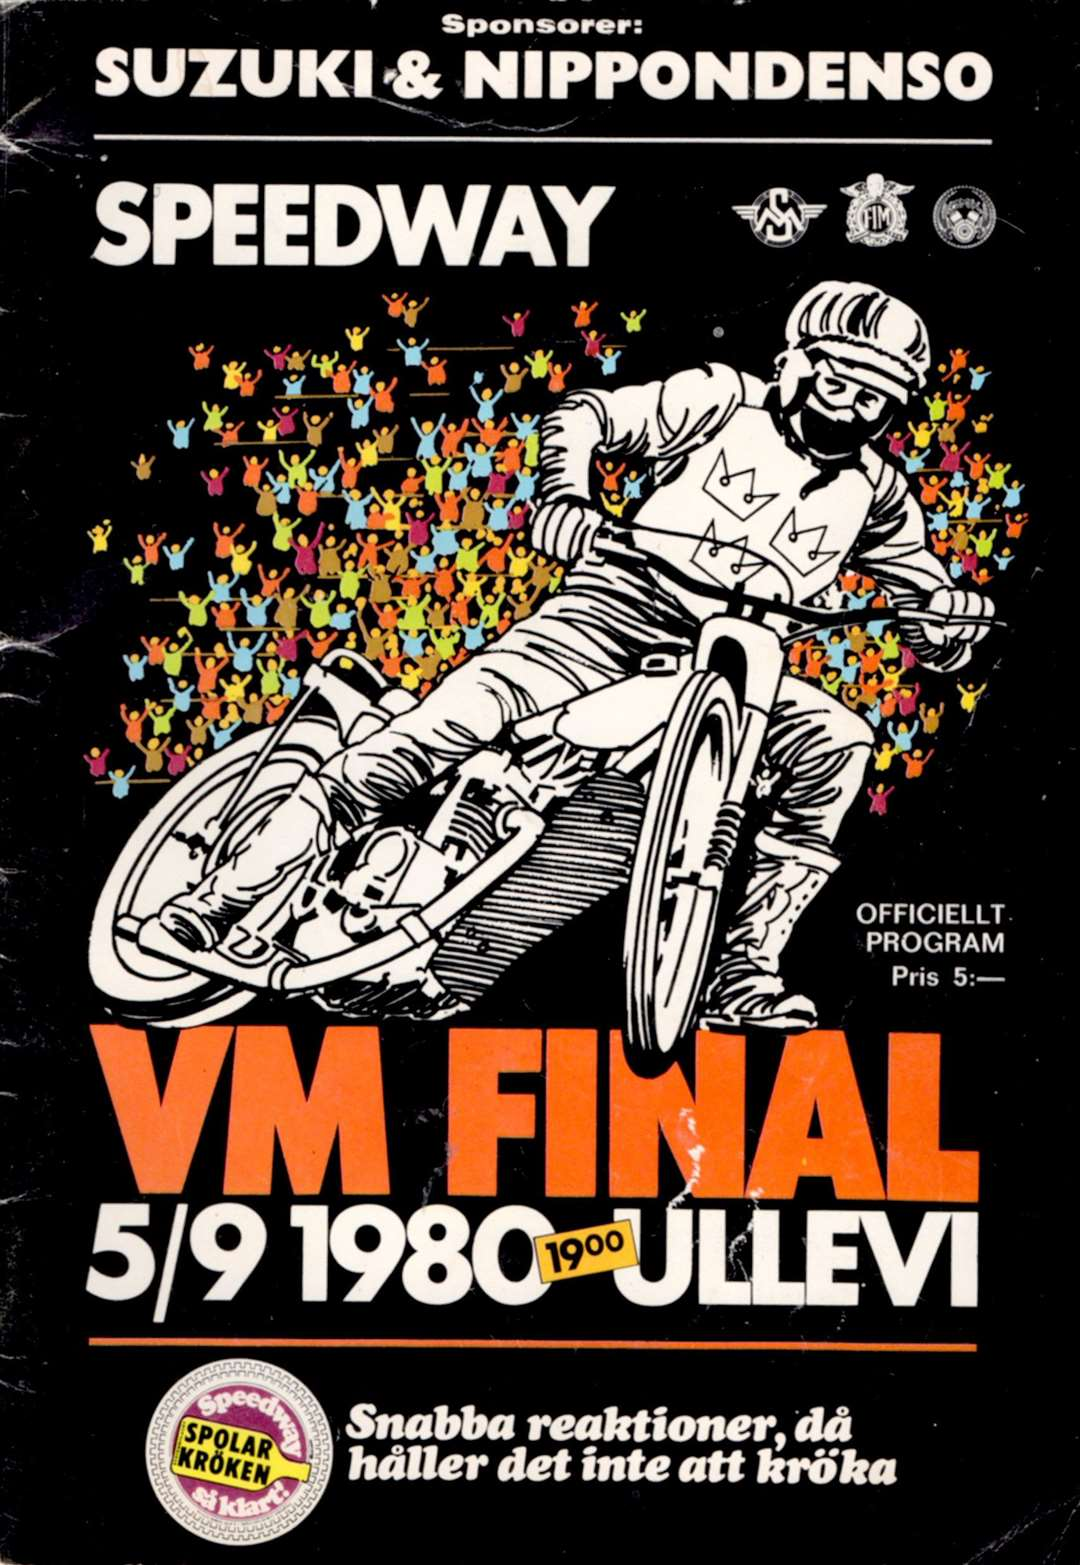 The programme cover for the 1980 world final in Sweden. MLNF-World Final (39283405)